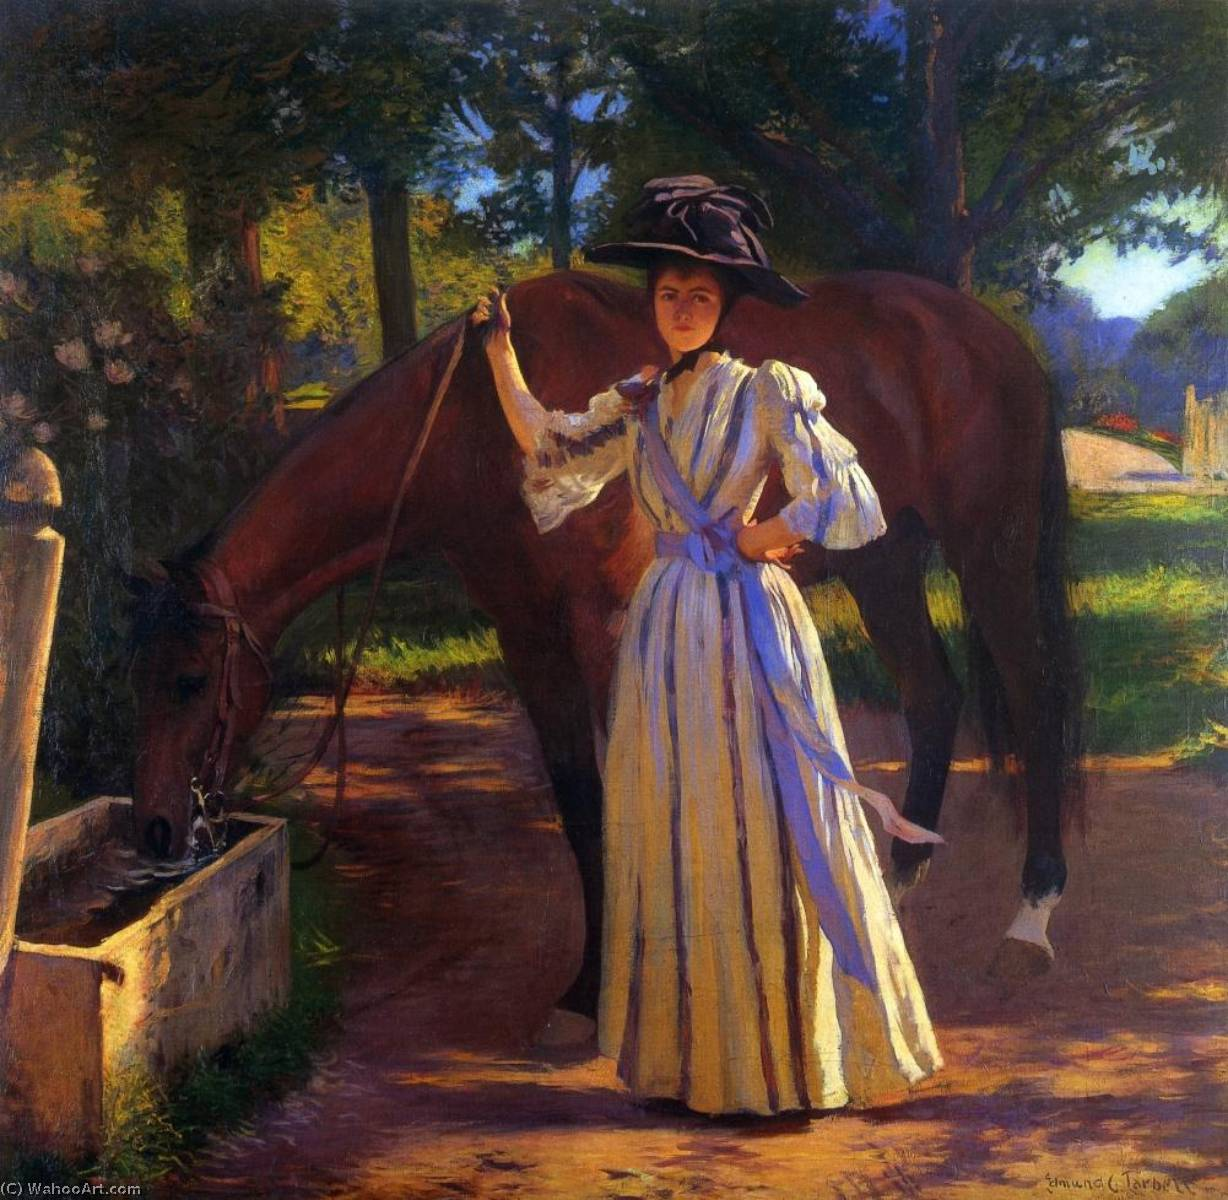 fille et cheval, 1892 de Edmund Charles Tarbell (1862-1938, United States) | Reproductions De Peintures Edmund Charles Tarbell | WahooArt.com